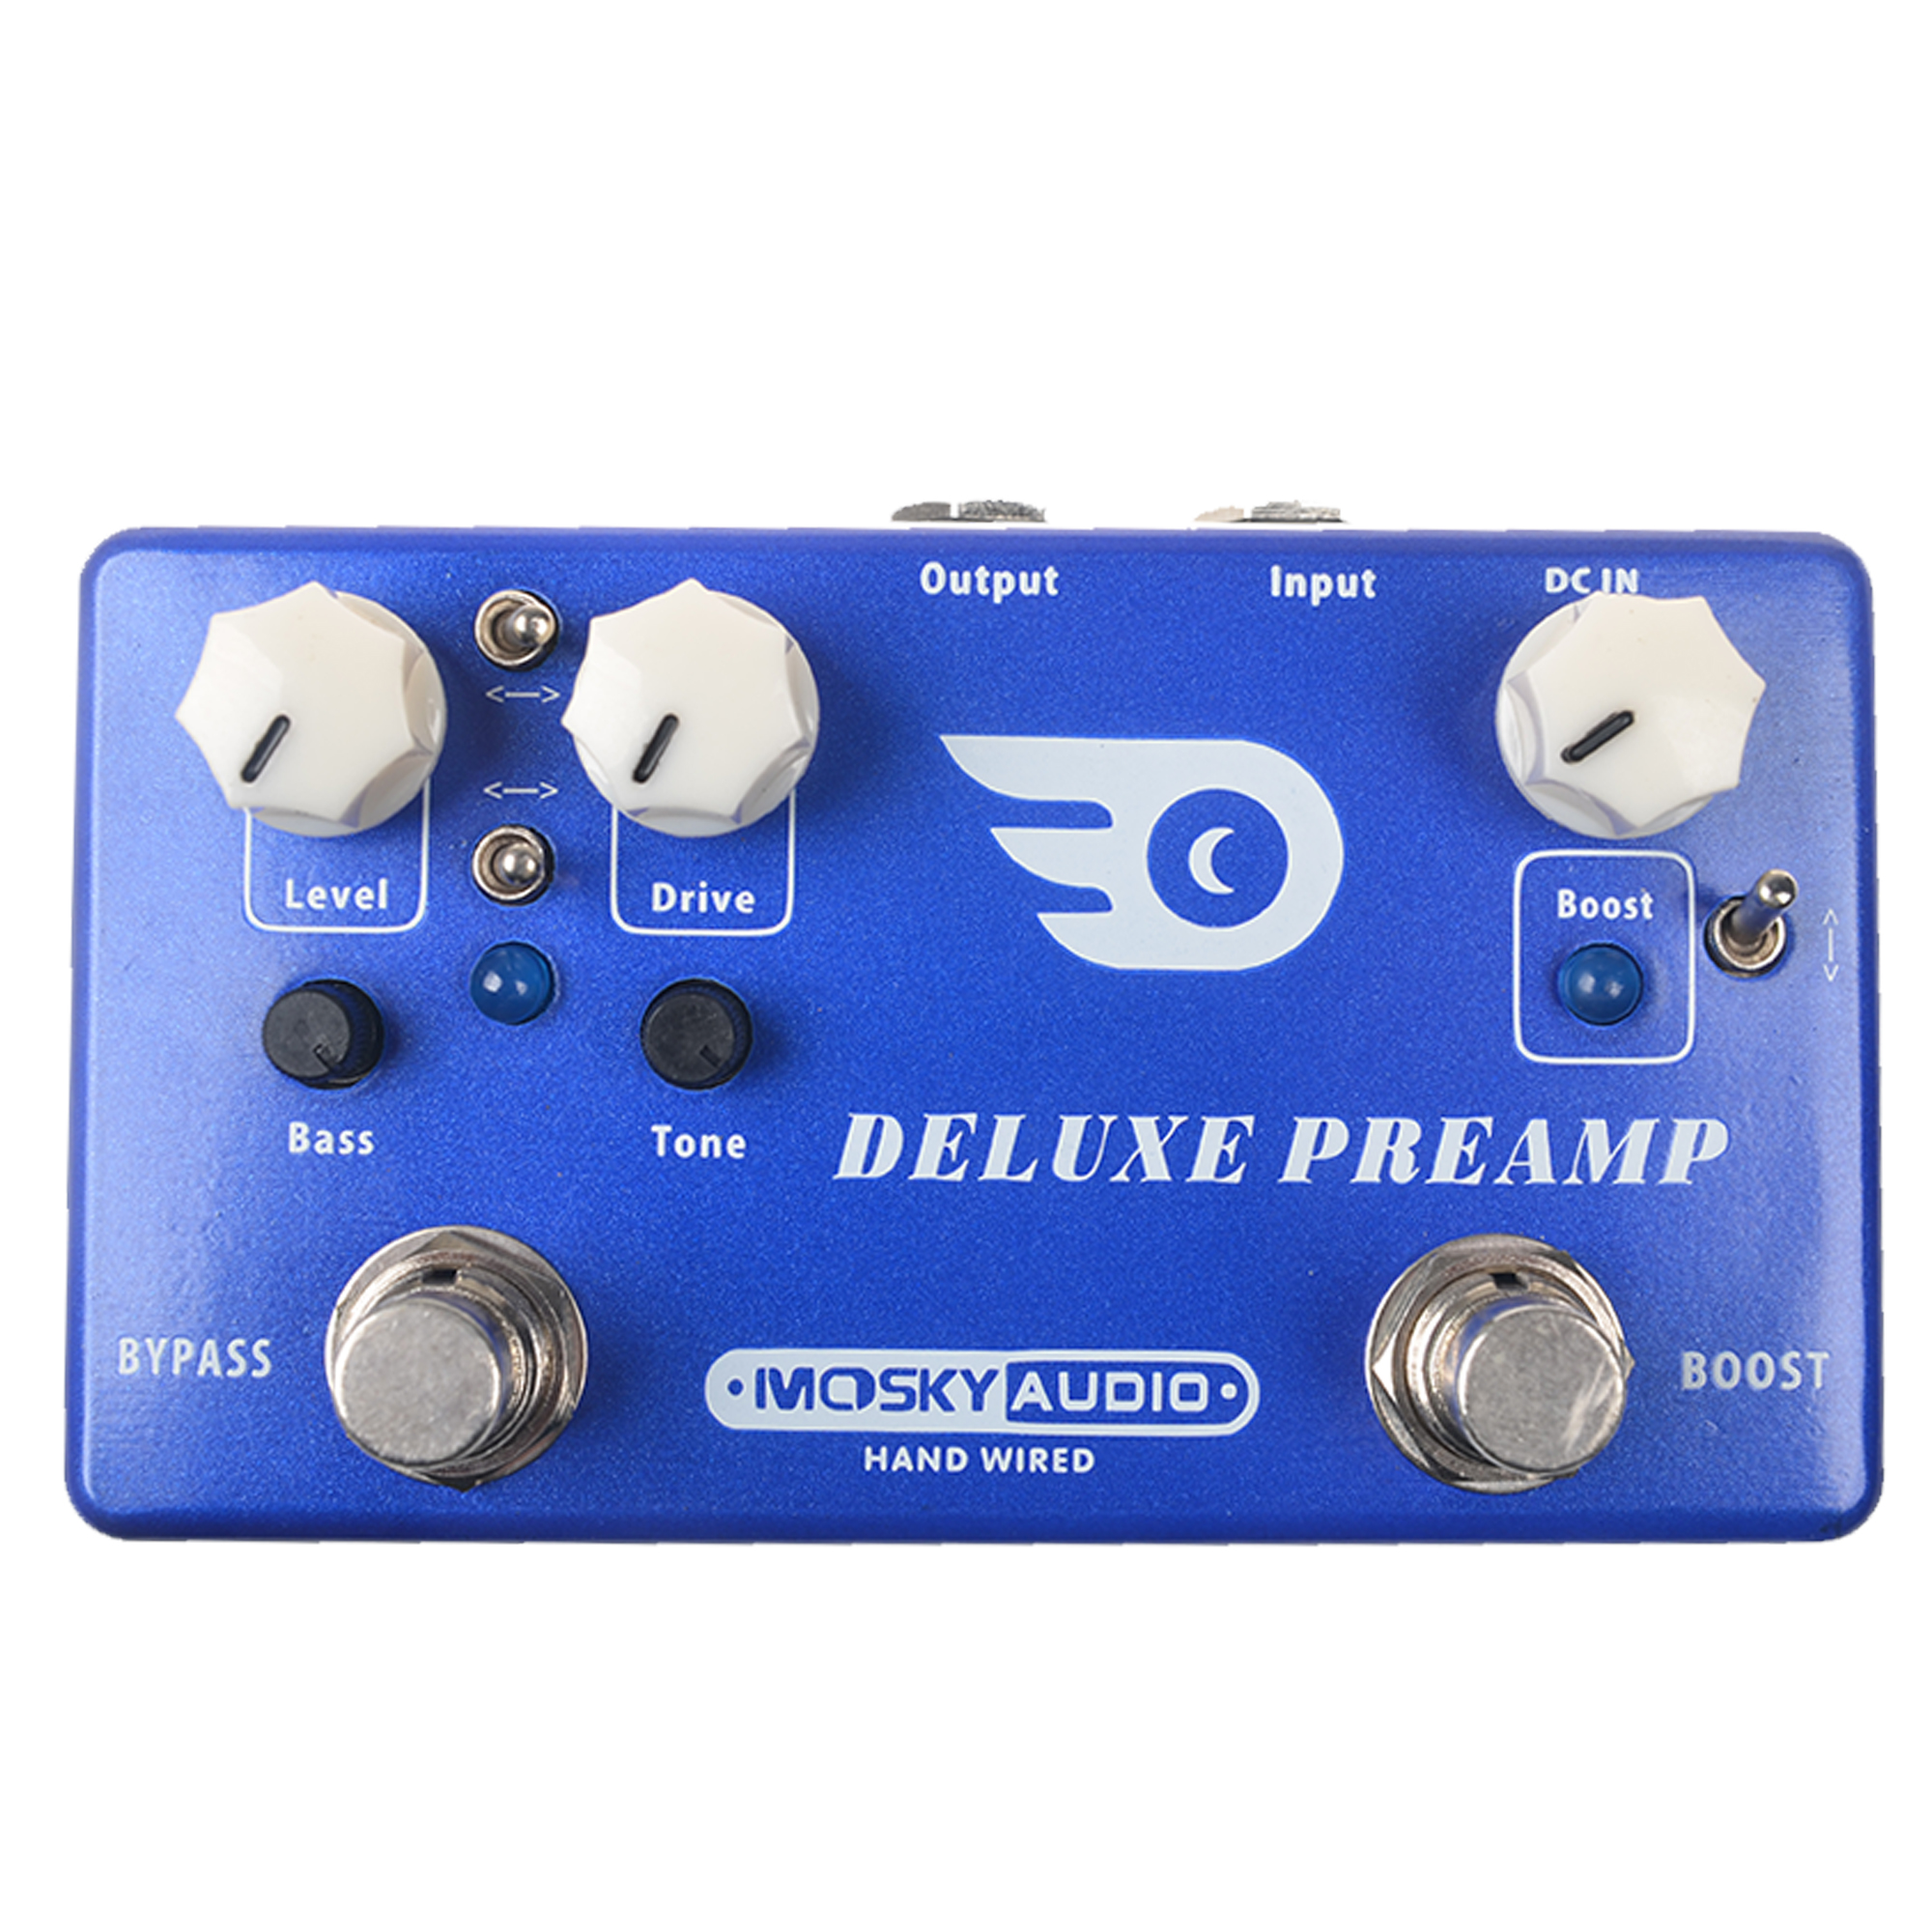 mosky deluxe preamp multi effects guitar effect pedal boost and overdrive pedal effect guitar. Black Bedroom Furniture Sets. Home Design Ideas